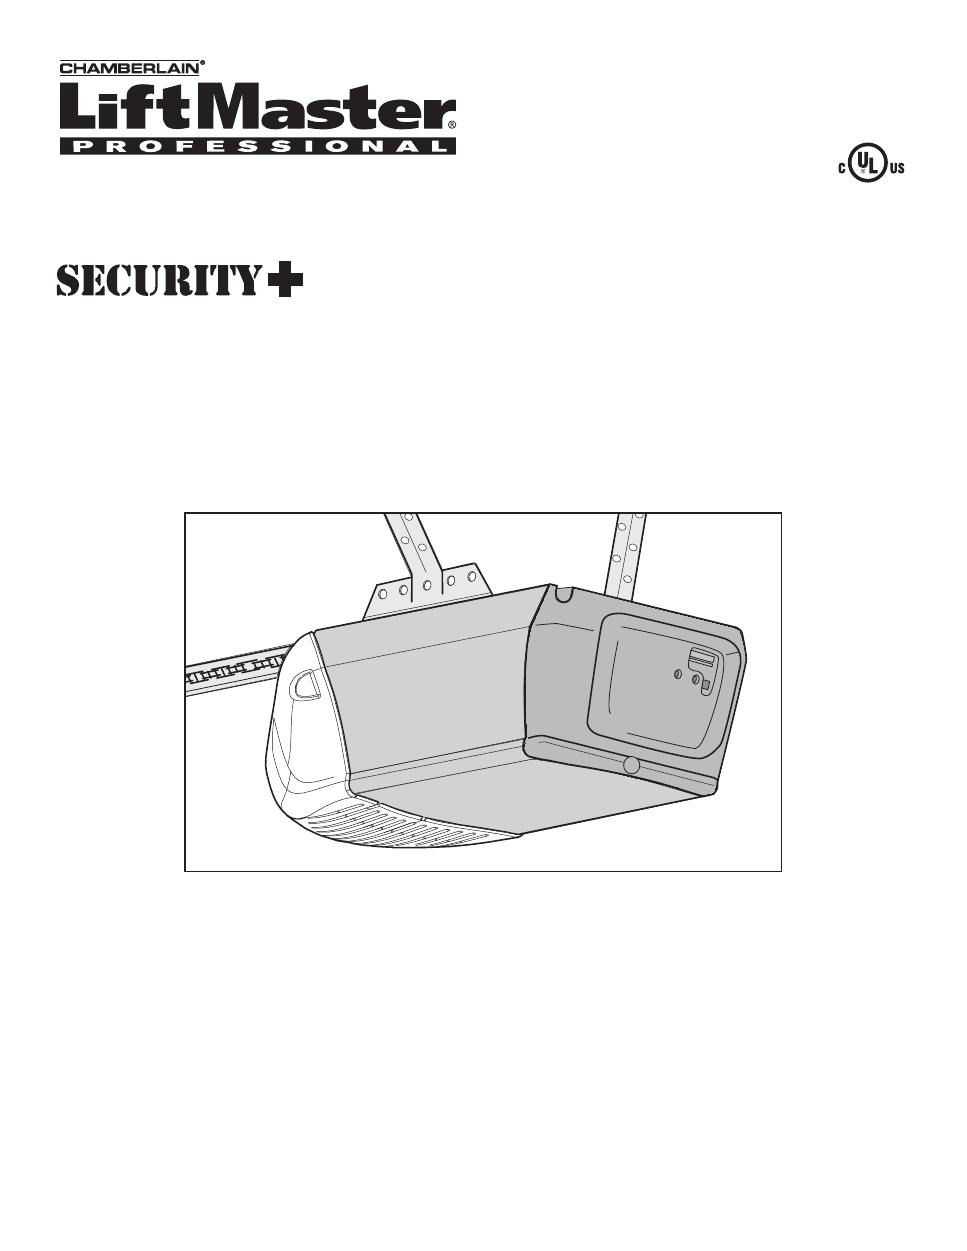 Liftmaster Garage Door Opener Manual Pdf 3265 Various Owner Access Master Wiring Diagram Free Download 3255 S 36 Pages Rh Manualagent Com Openers Product Chamberlain